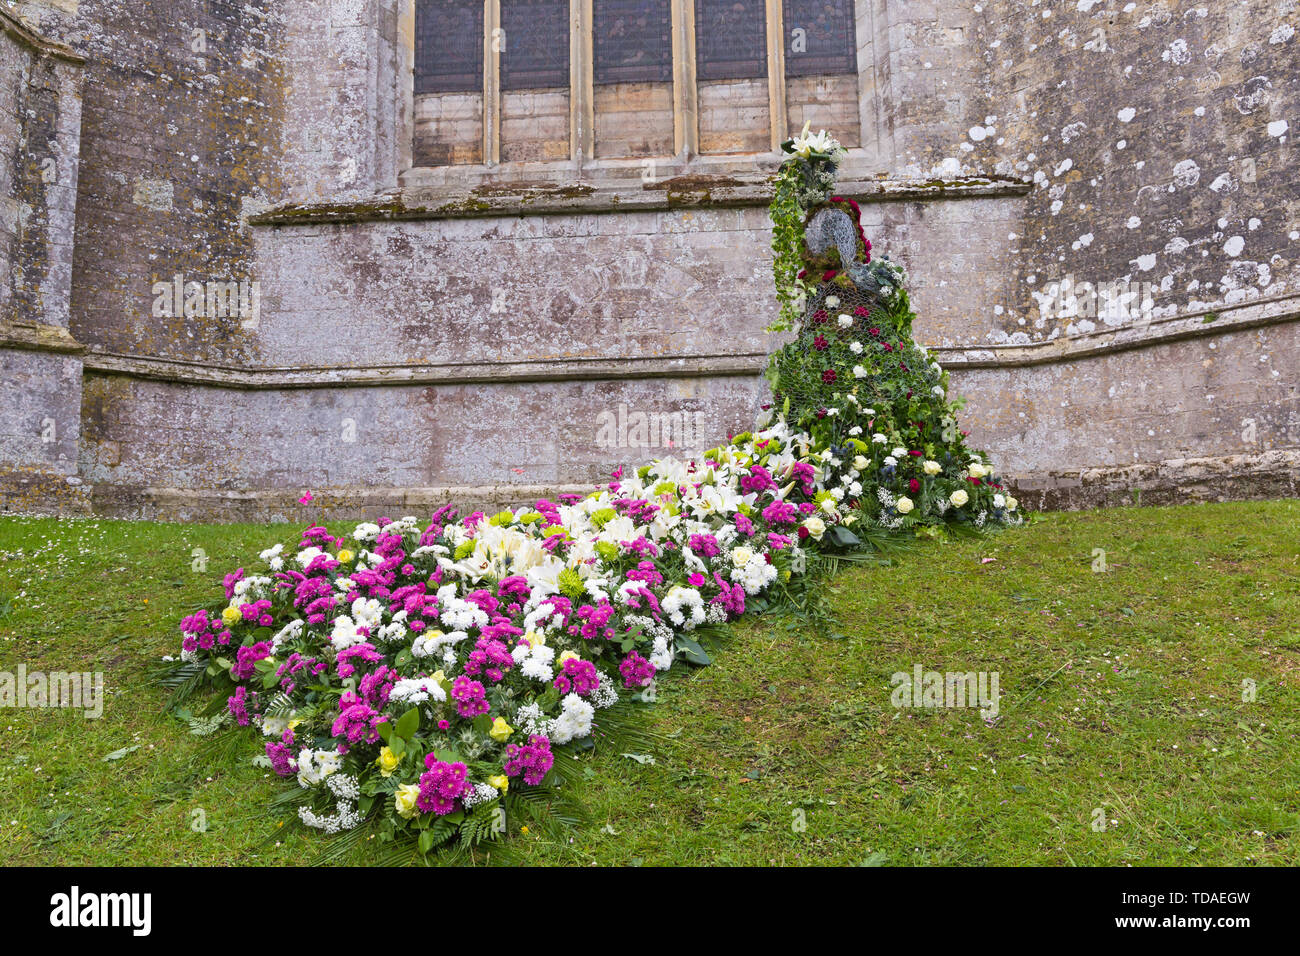 Christchurch, Dorset UK. 14th Jun 2019. The 2nd annual FlowerFest takes place in the historic town of Christchurch, supporting MacMillan Caring Locally Brick by Brick appeal. We all need TLC and Together we Link the Community particularly with projects floral, nature or garden related.  Today is the first day of the 3 day event where visitors can follow a floral trail around the town. Credit: Carolyn Jenkins/Alamy Live News - Stock Image